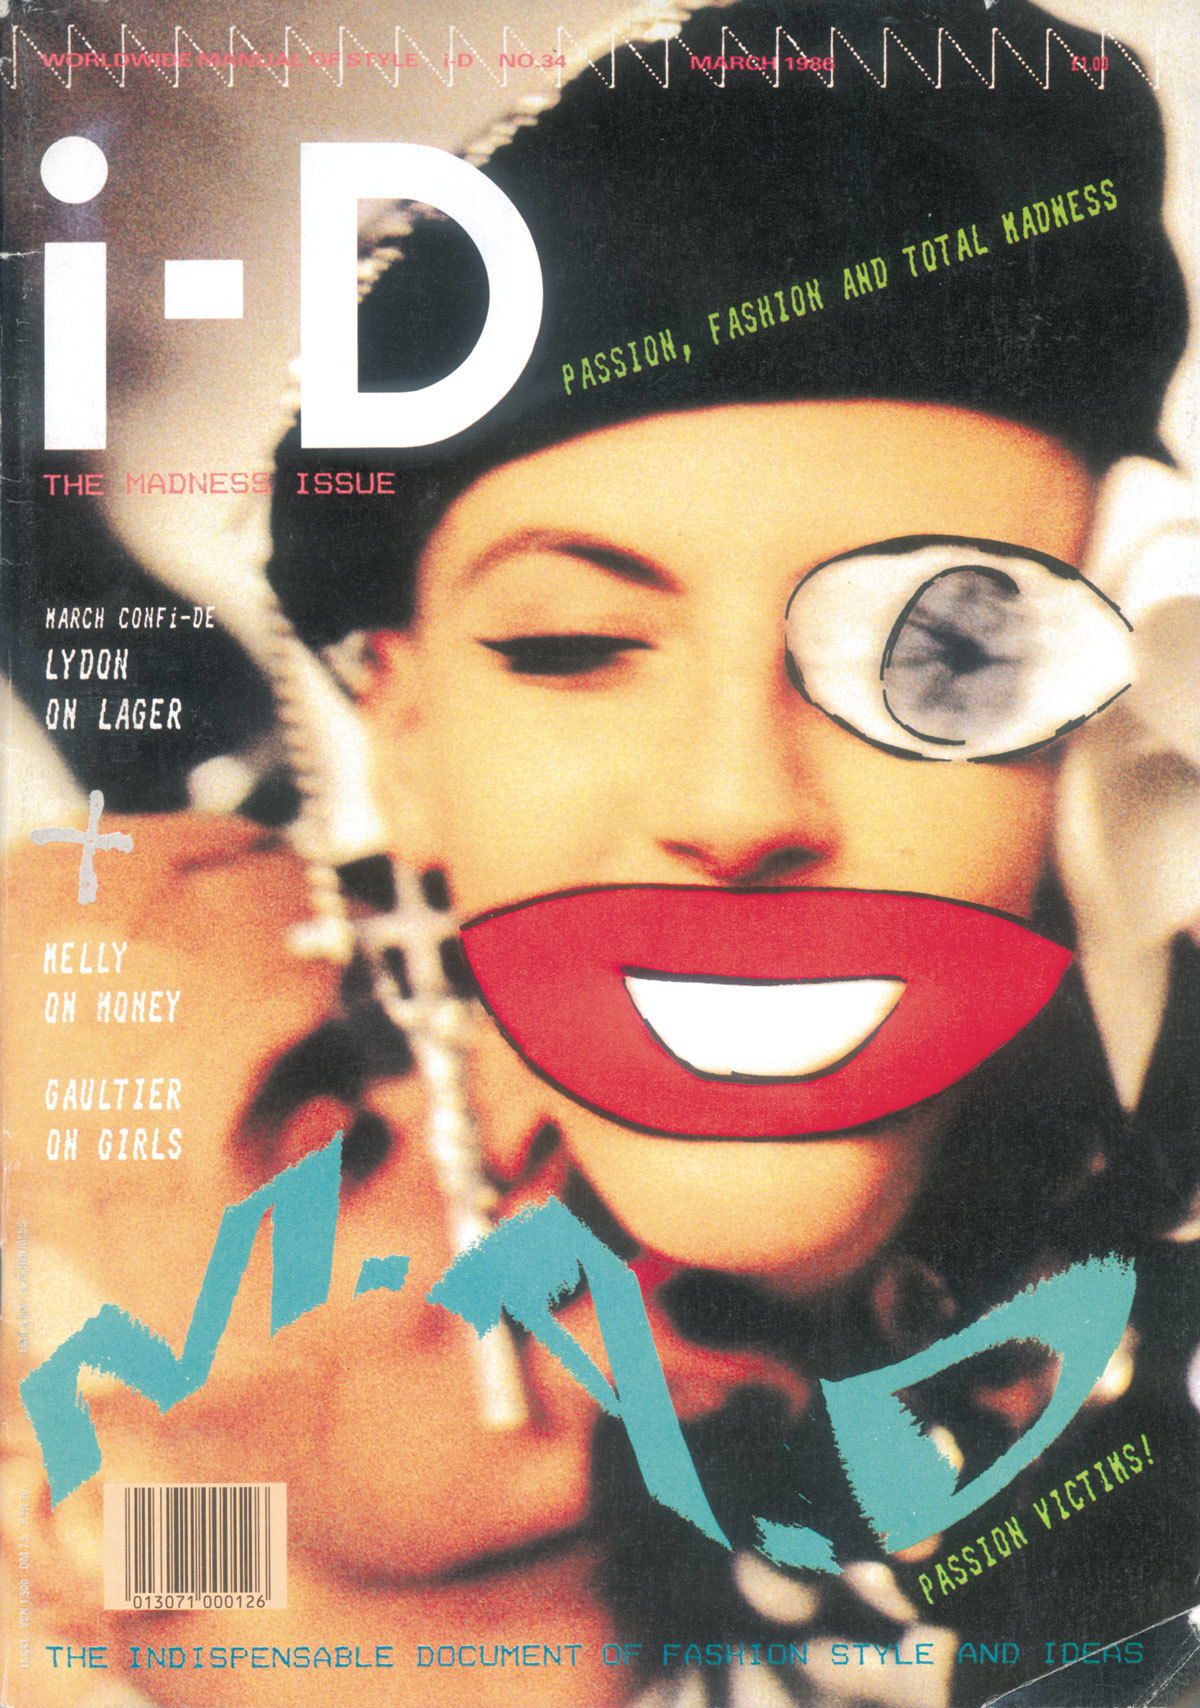 Fashionmonger - Página 4 A-look-through-the-judy-blame-i-d-archive-body-image-1466095142